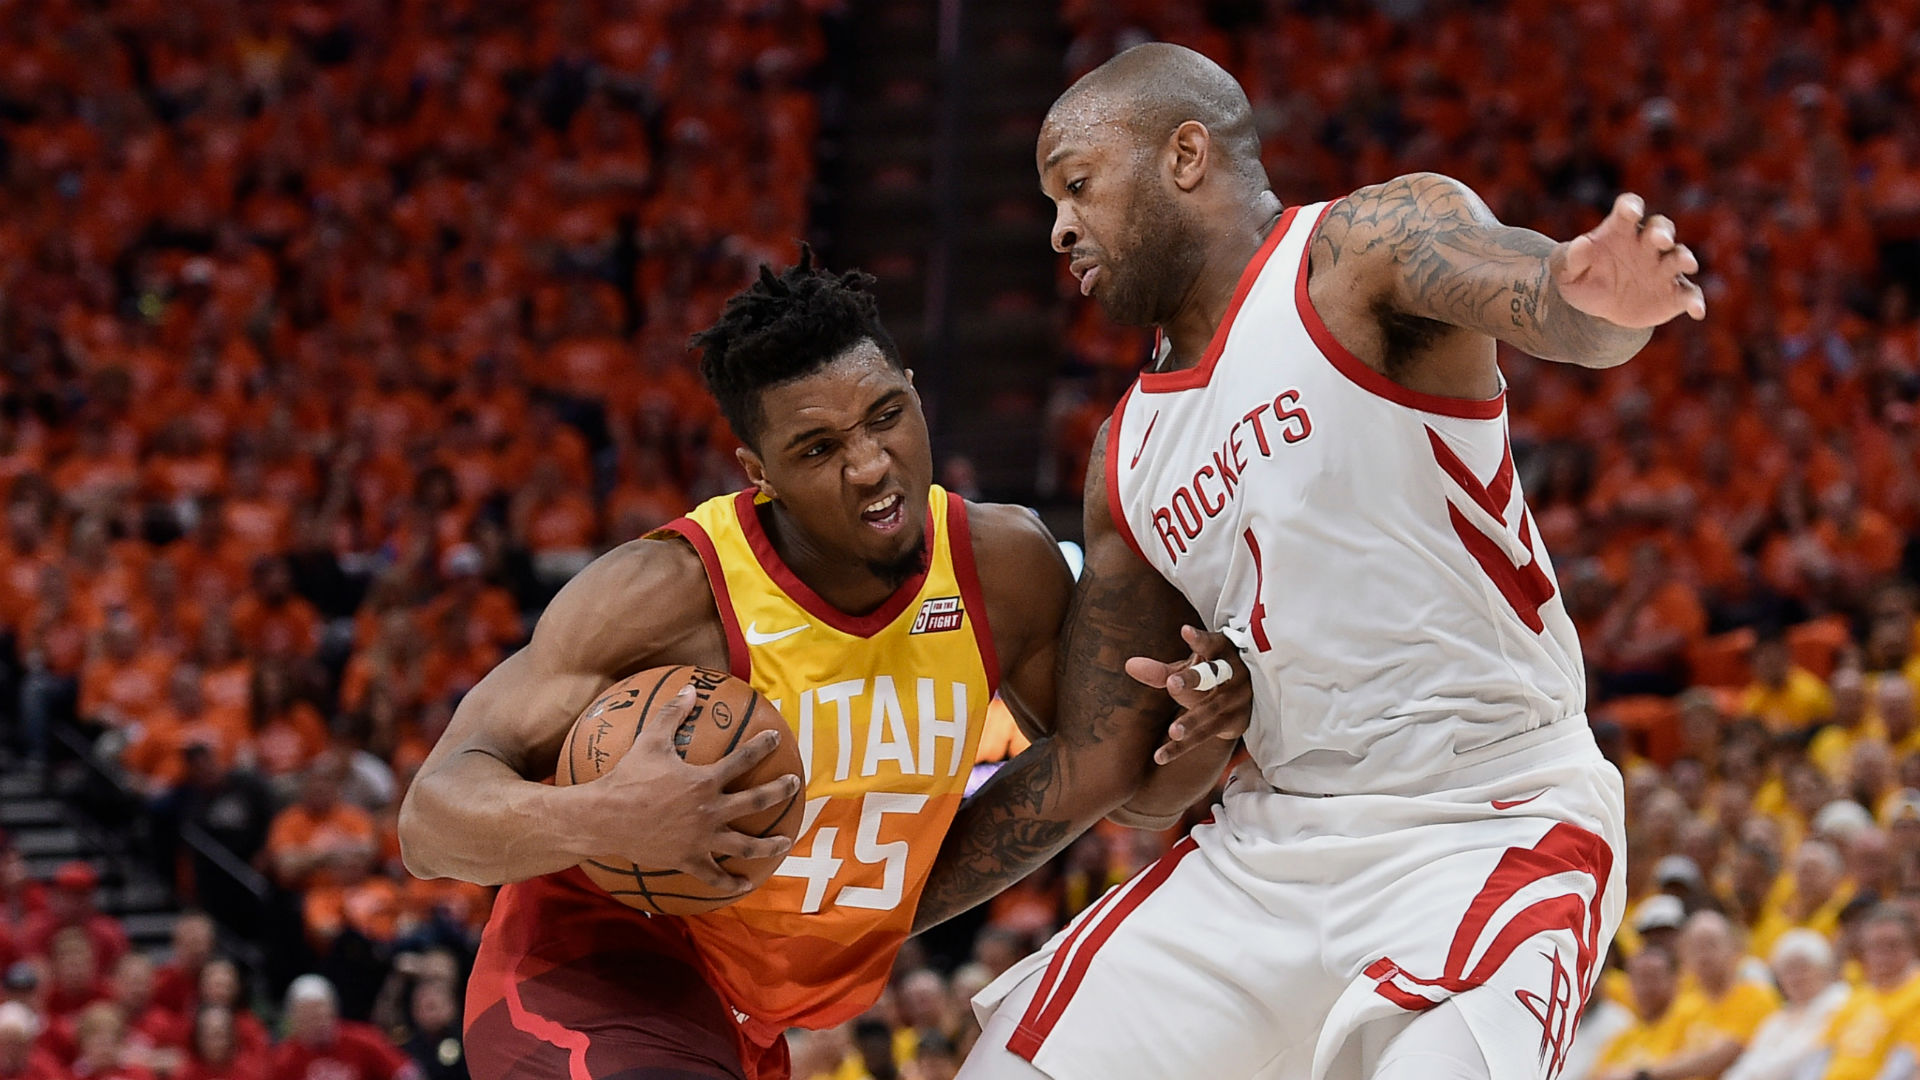 nba playoffs 2018: donovan mitchell says game 3 vs. rockets would've